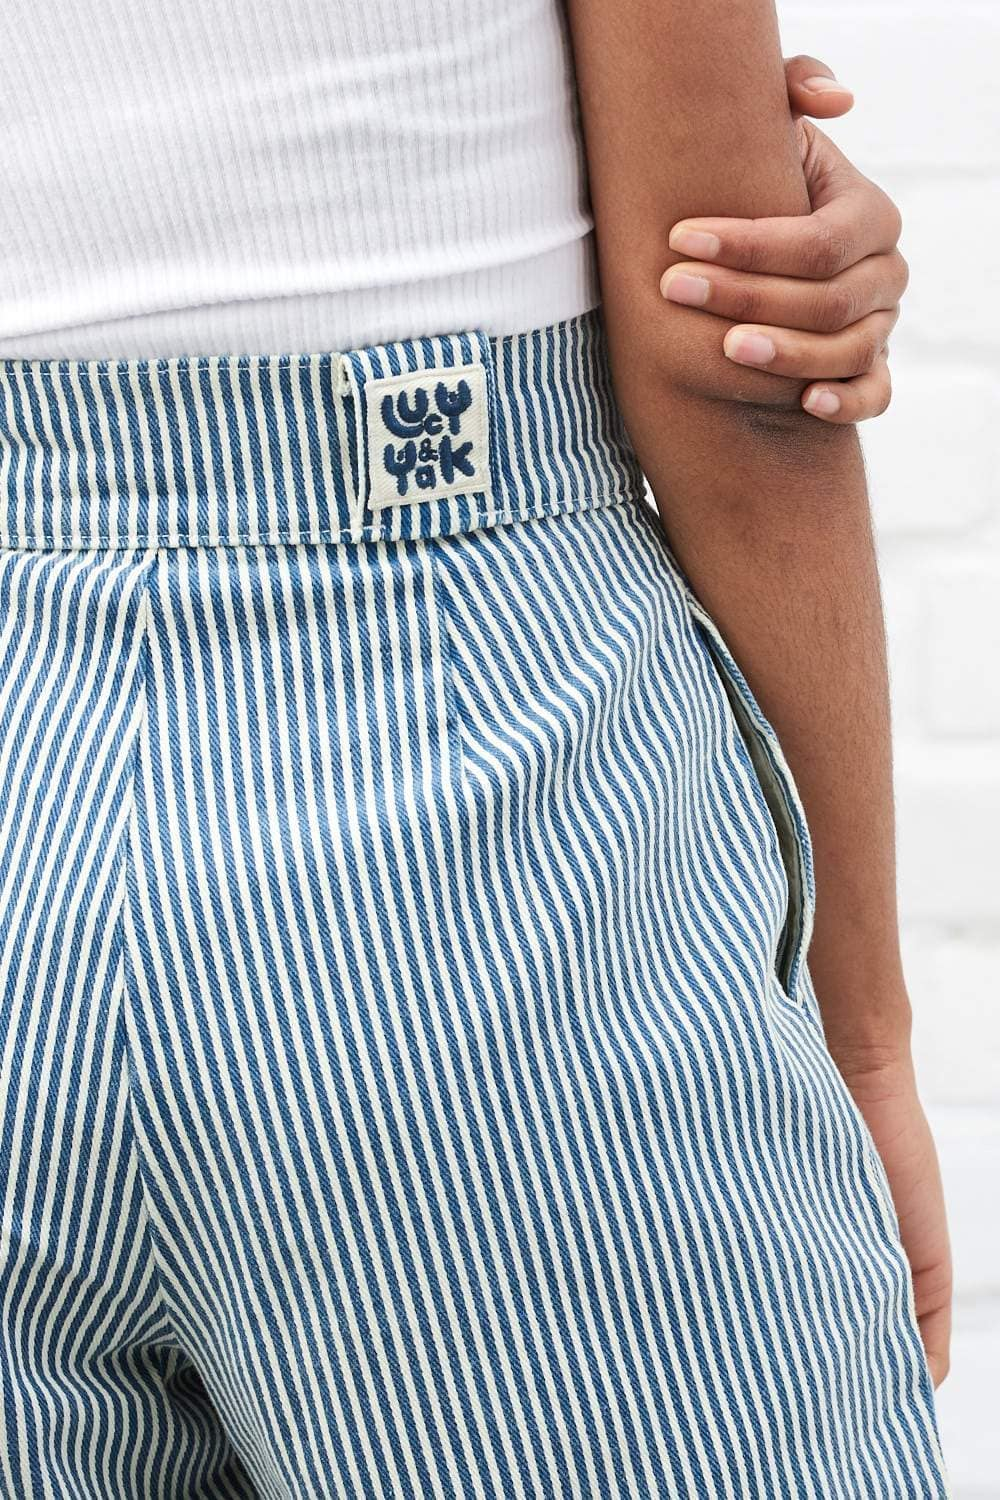 'Addison' High Waisted Organic Cotton Twill Jeans in Blue Stripe